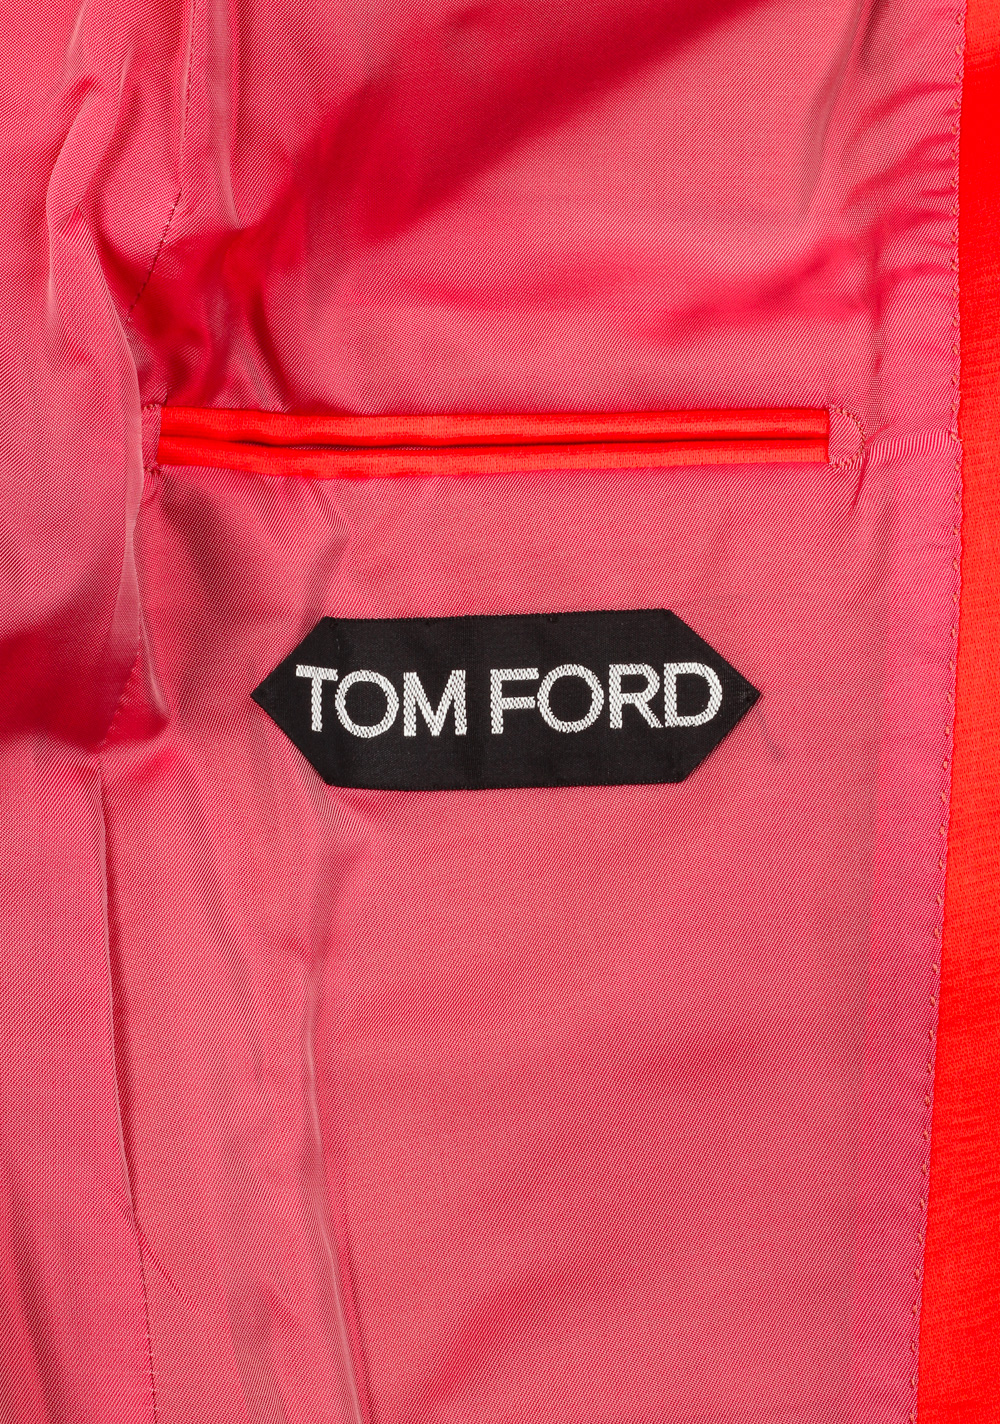 TOM FORD Basic Base M Red Suit Size 46 / 36R U.S.   Costume Limité